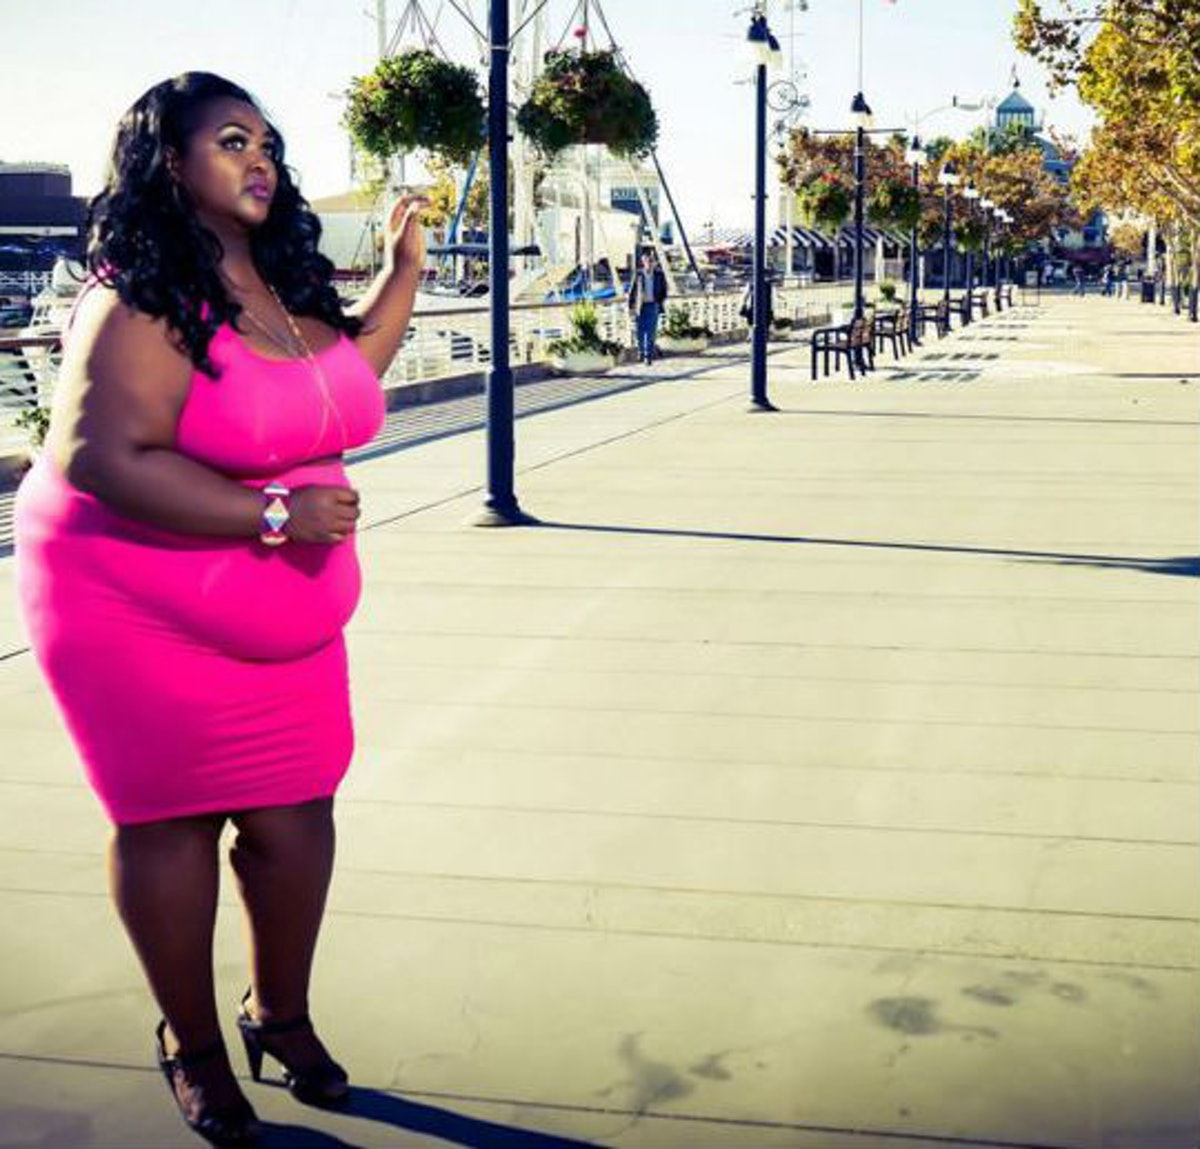 48 Plus Size Women Rocking Their Visible Belly Outlines In Flawless Fashion  — PHOTOS